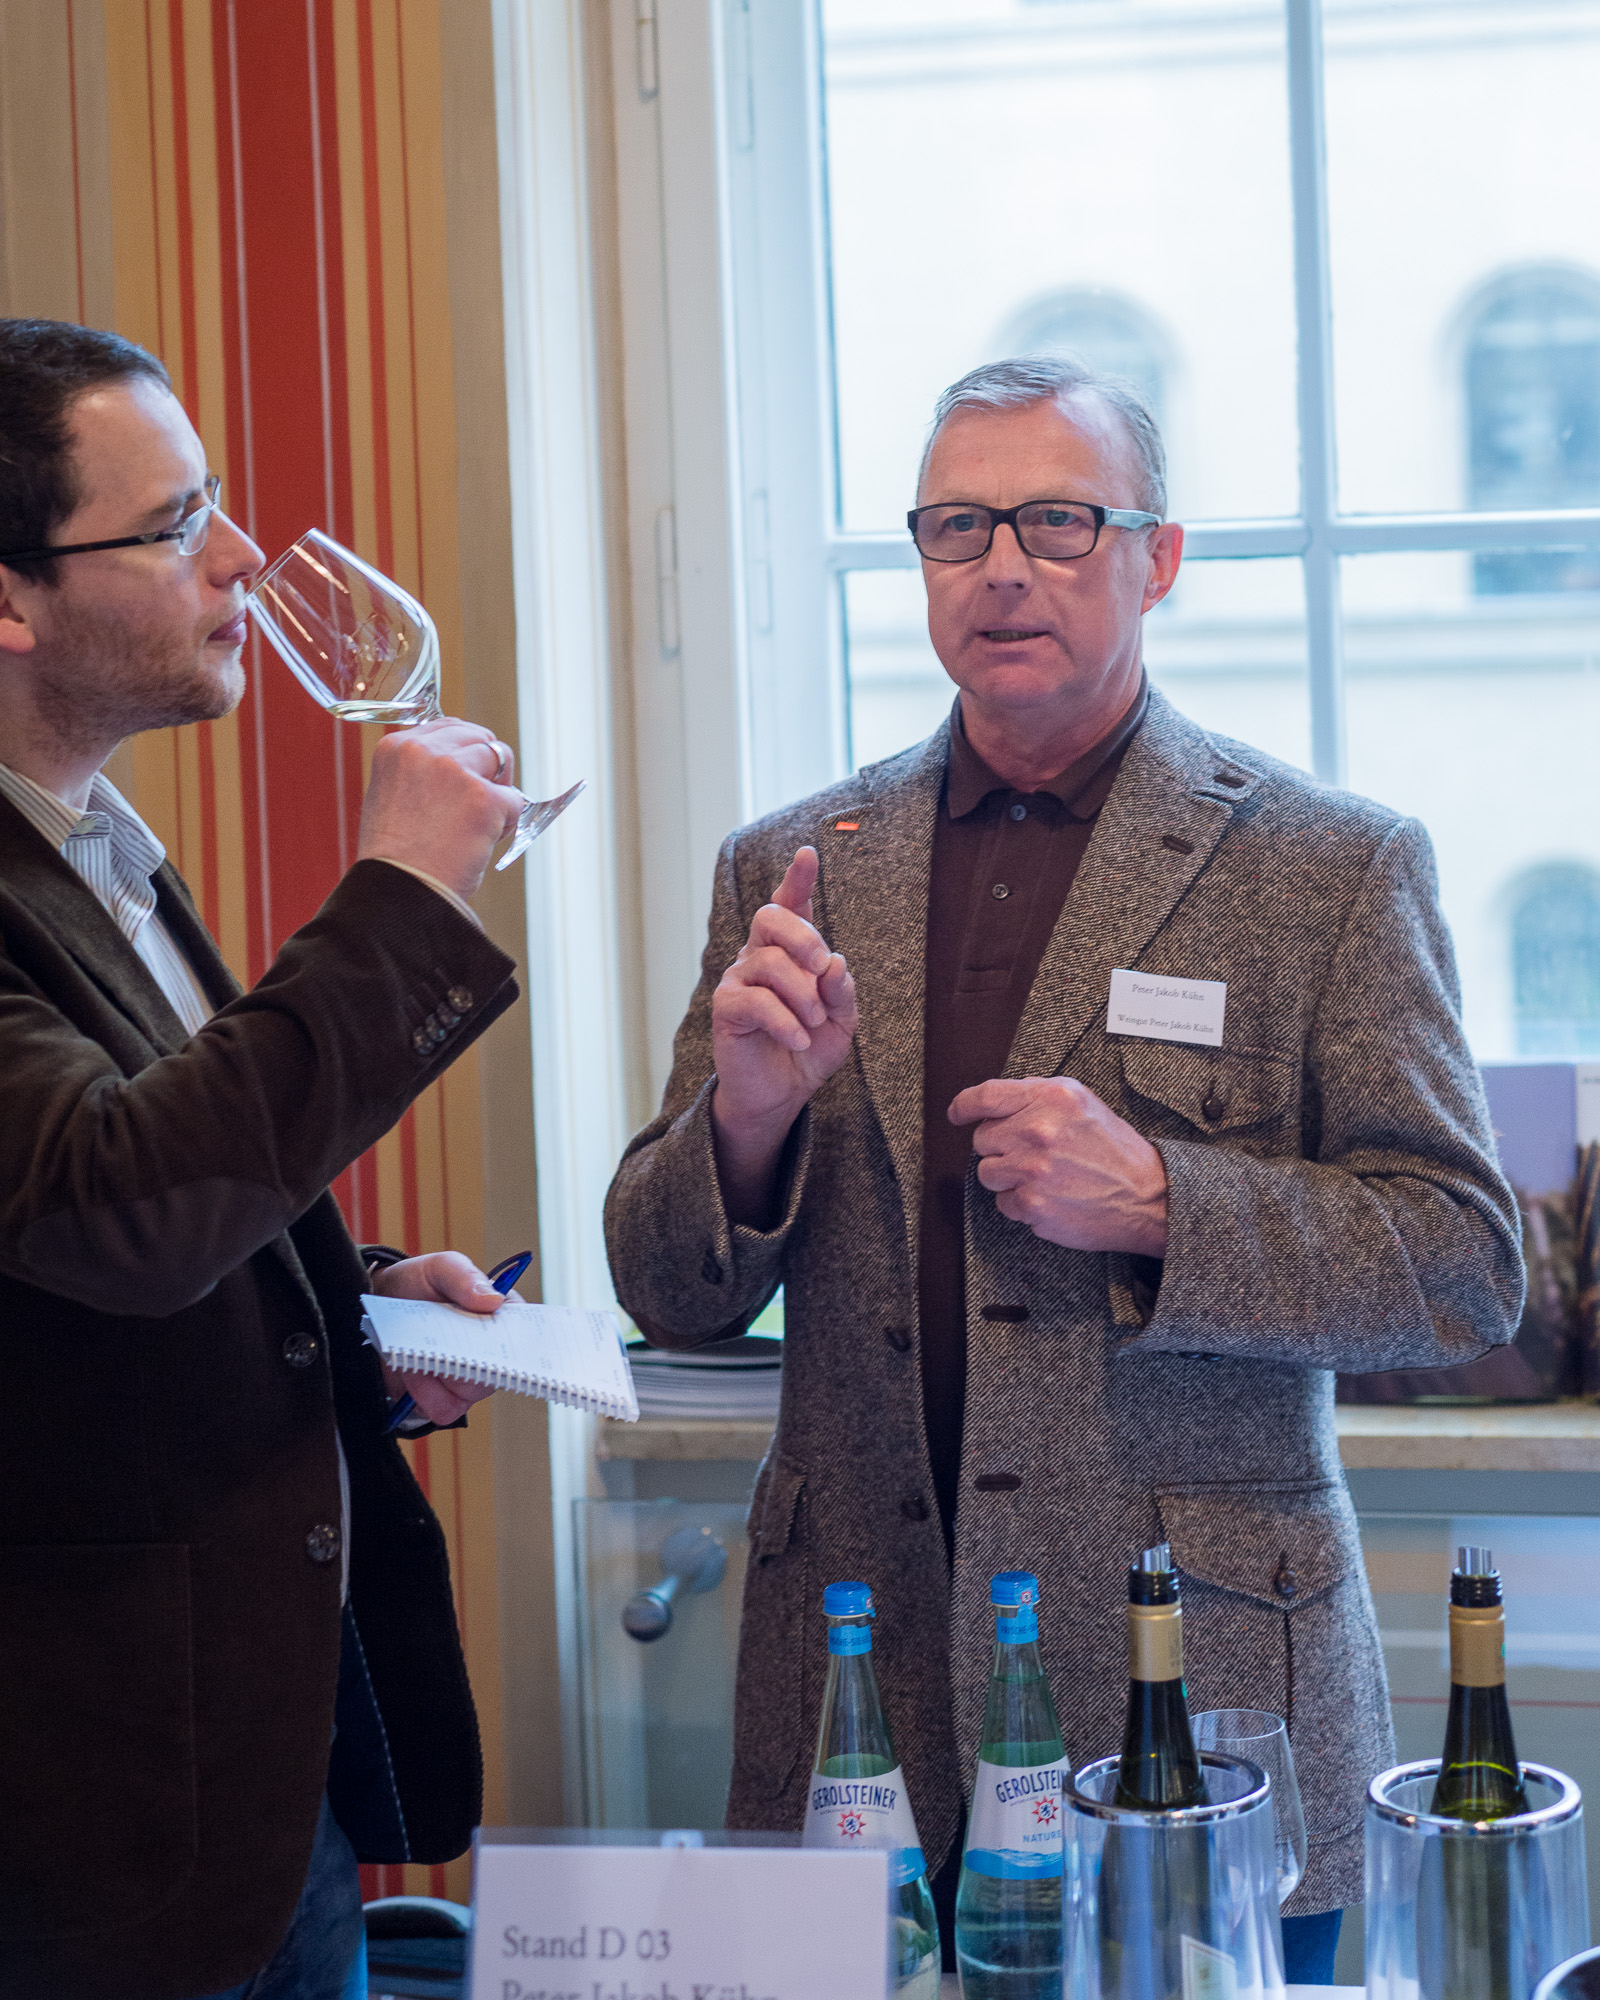 P.J. Kuehn teaching wine - a Rambler beginning to understand